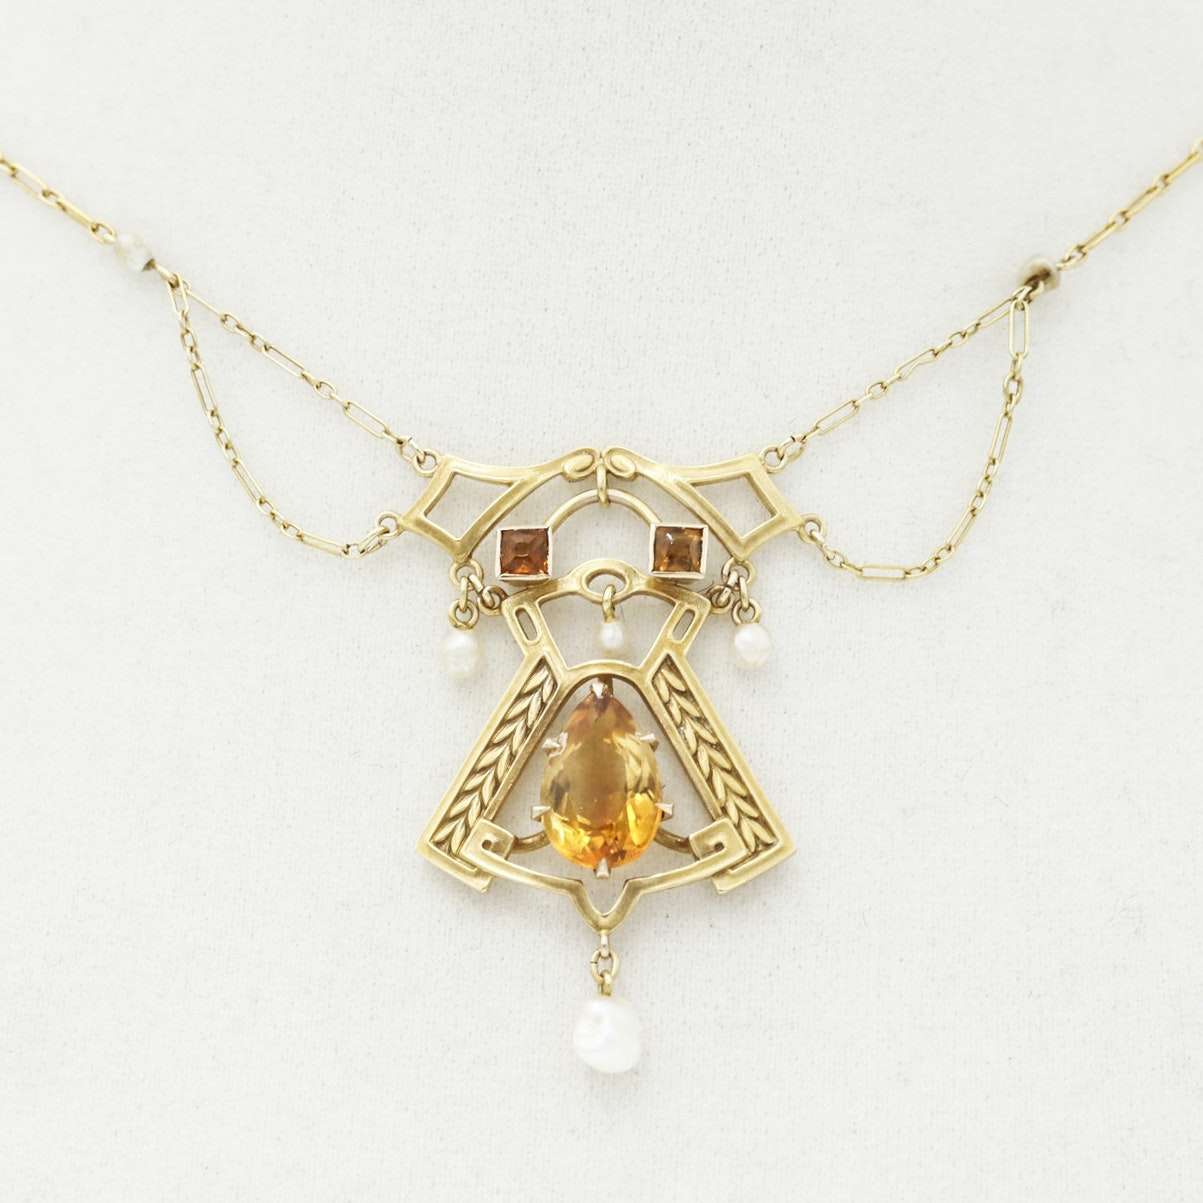 Art Deco 14K Yellow Gold Citrine and Seed Pearl Necklace, Vintage